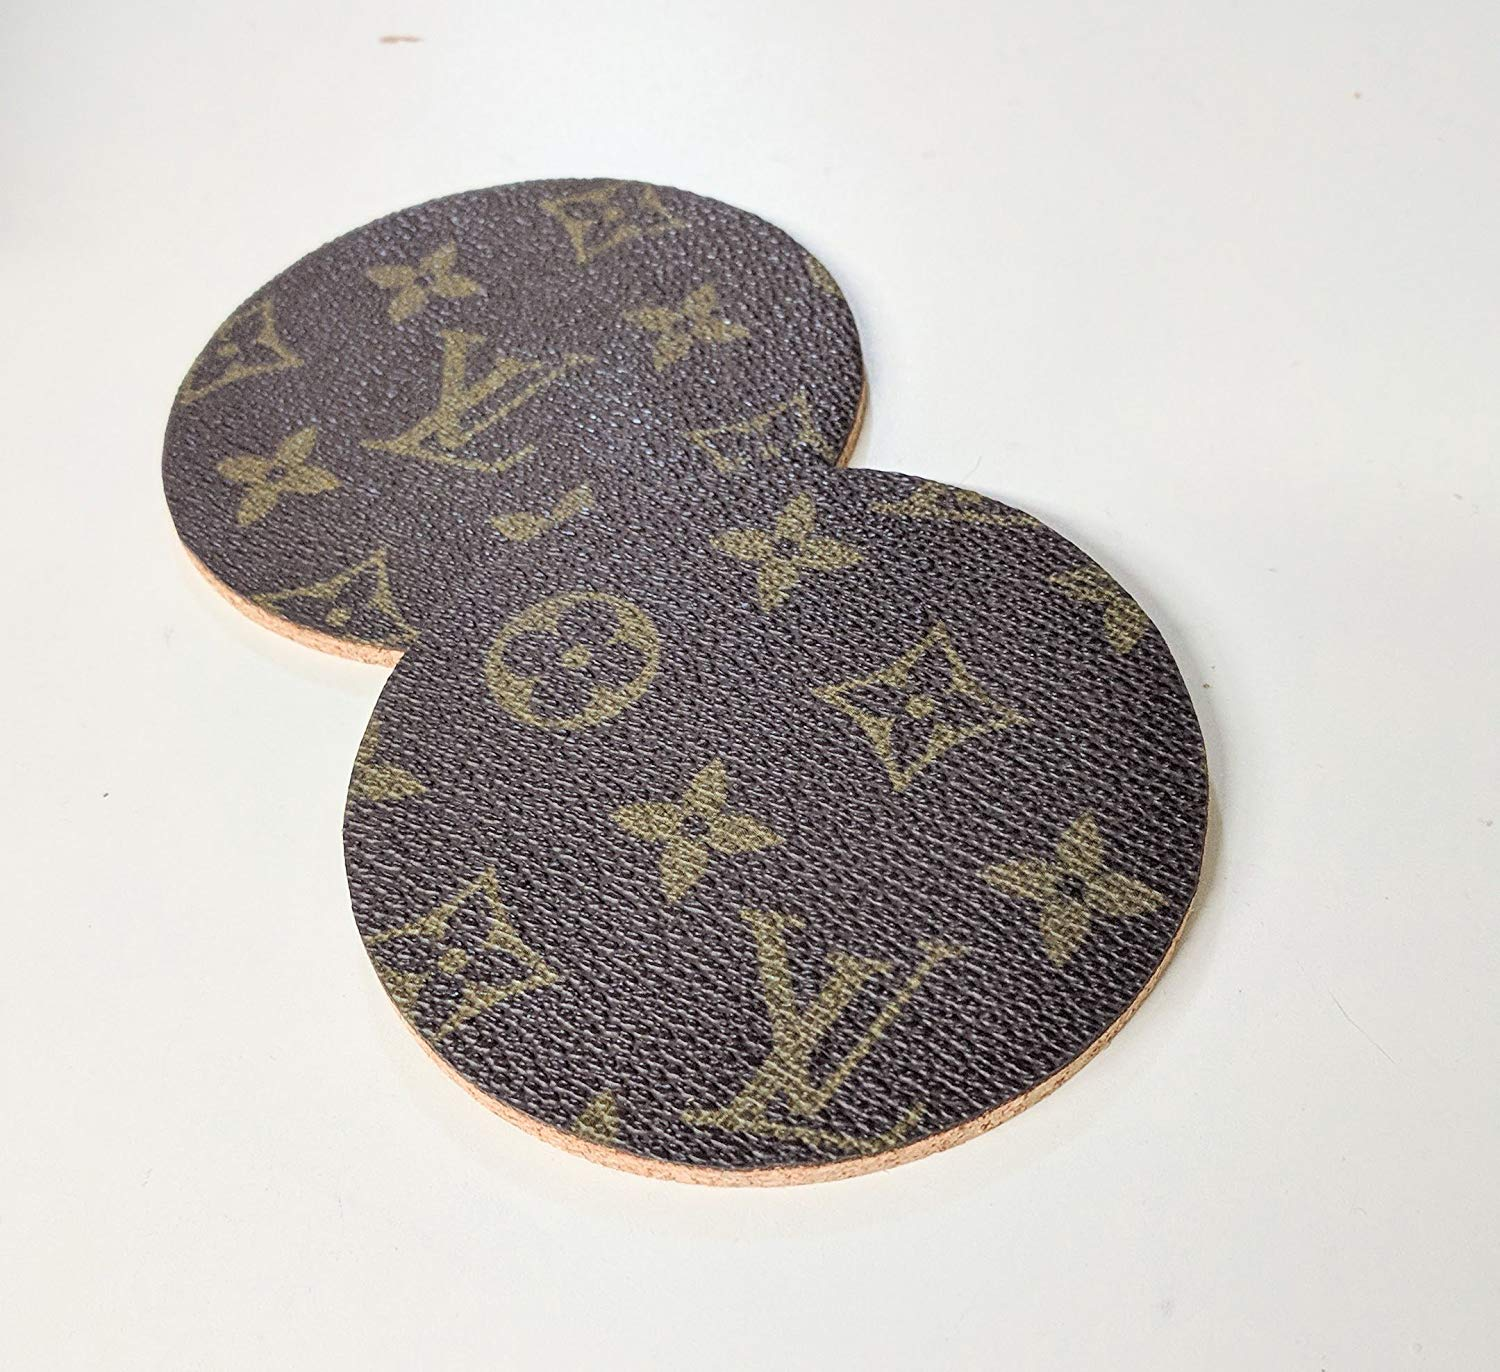 Handcrafted upcycled and repurposed Set of two coasters from old bag's canvas-please read item description before you make your purchase